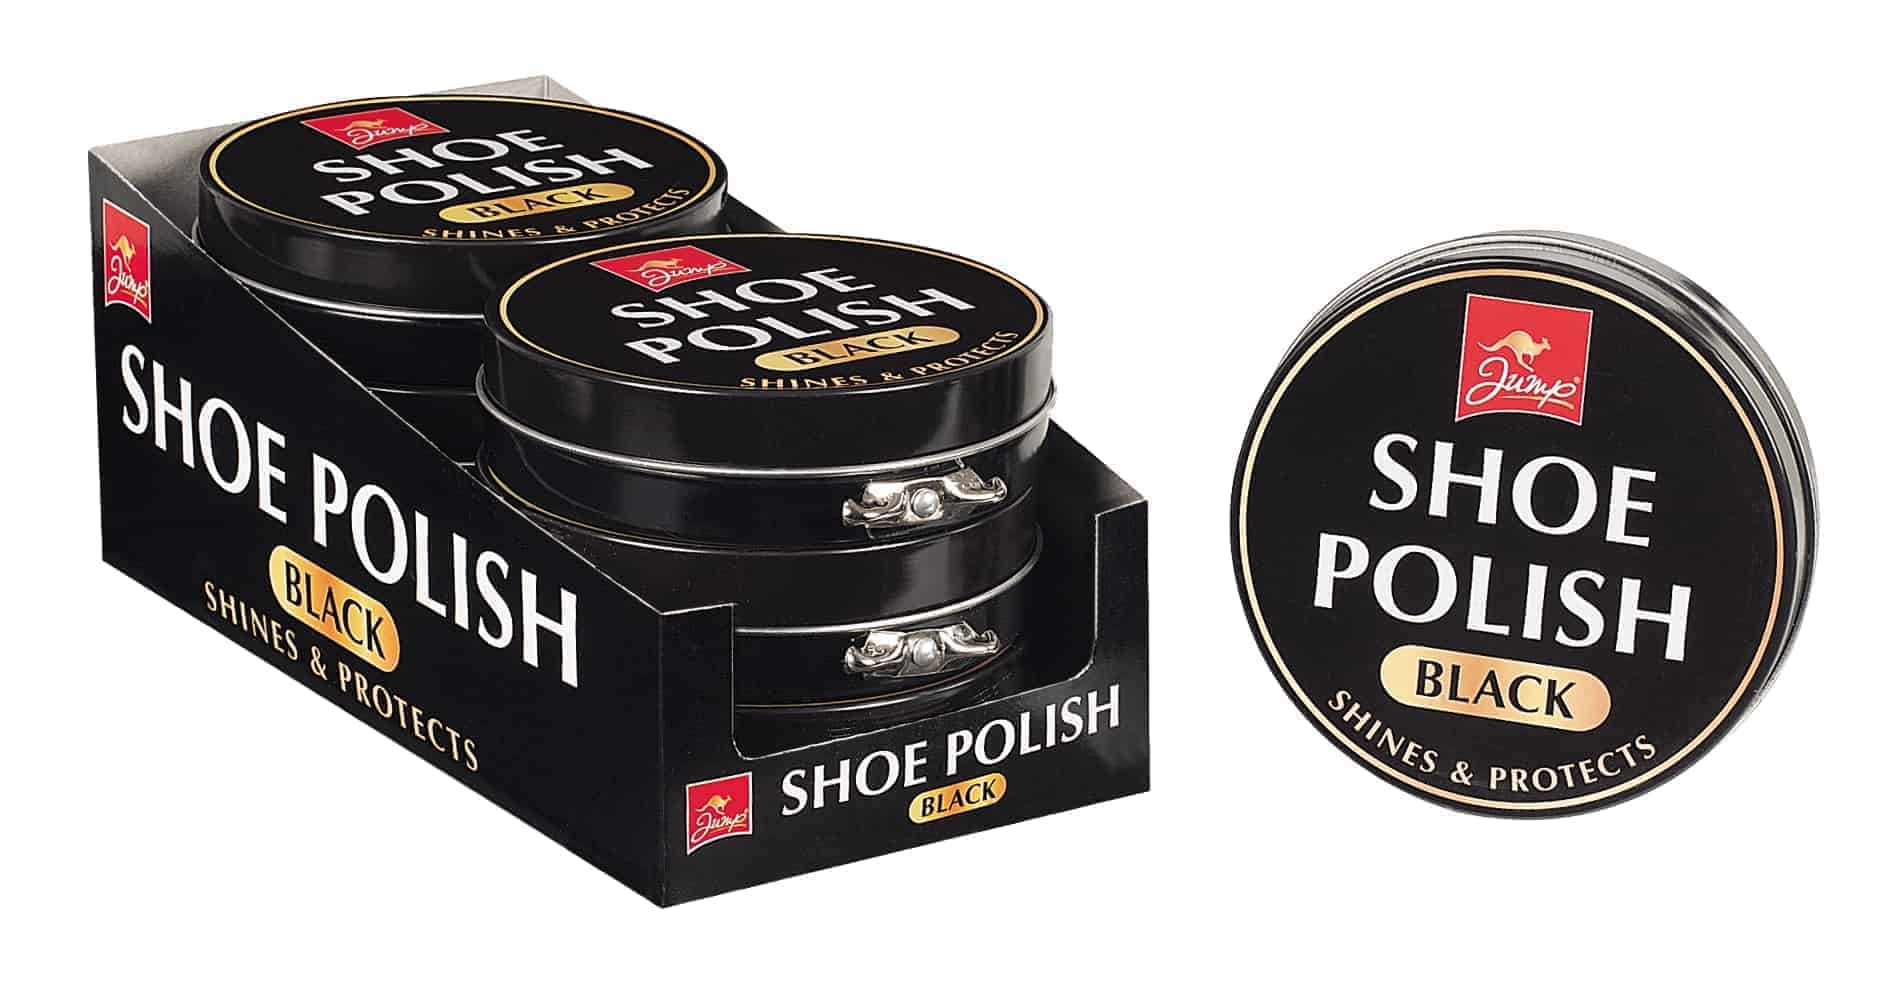 Jump Shoe Polish - Black